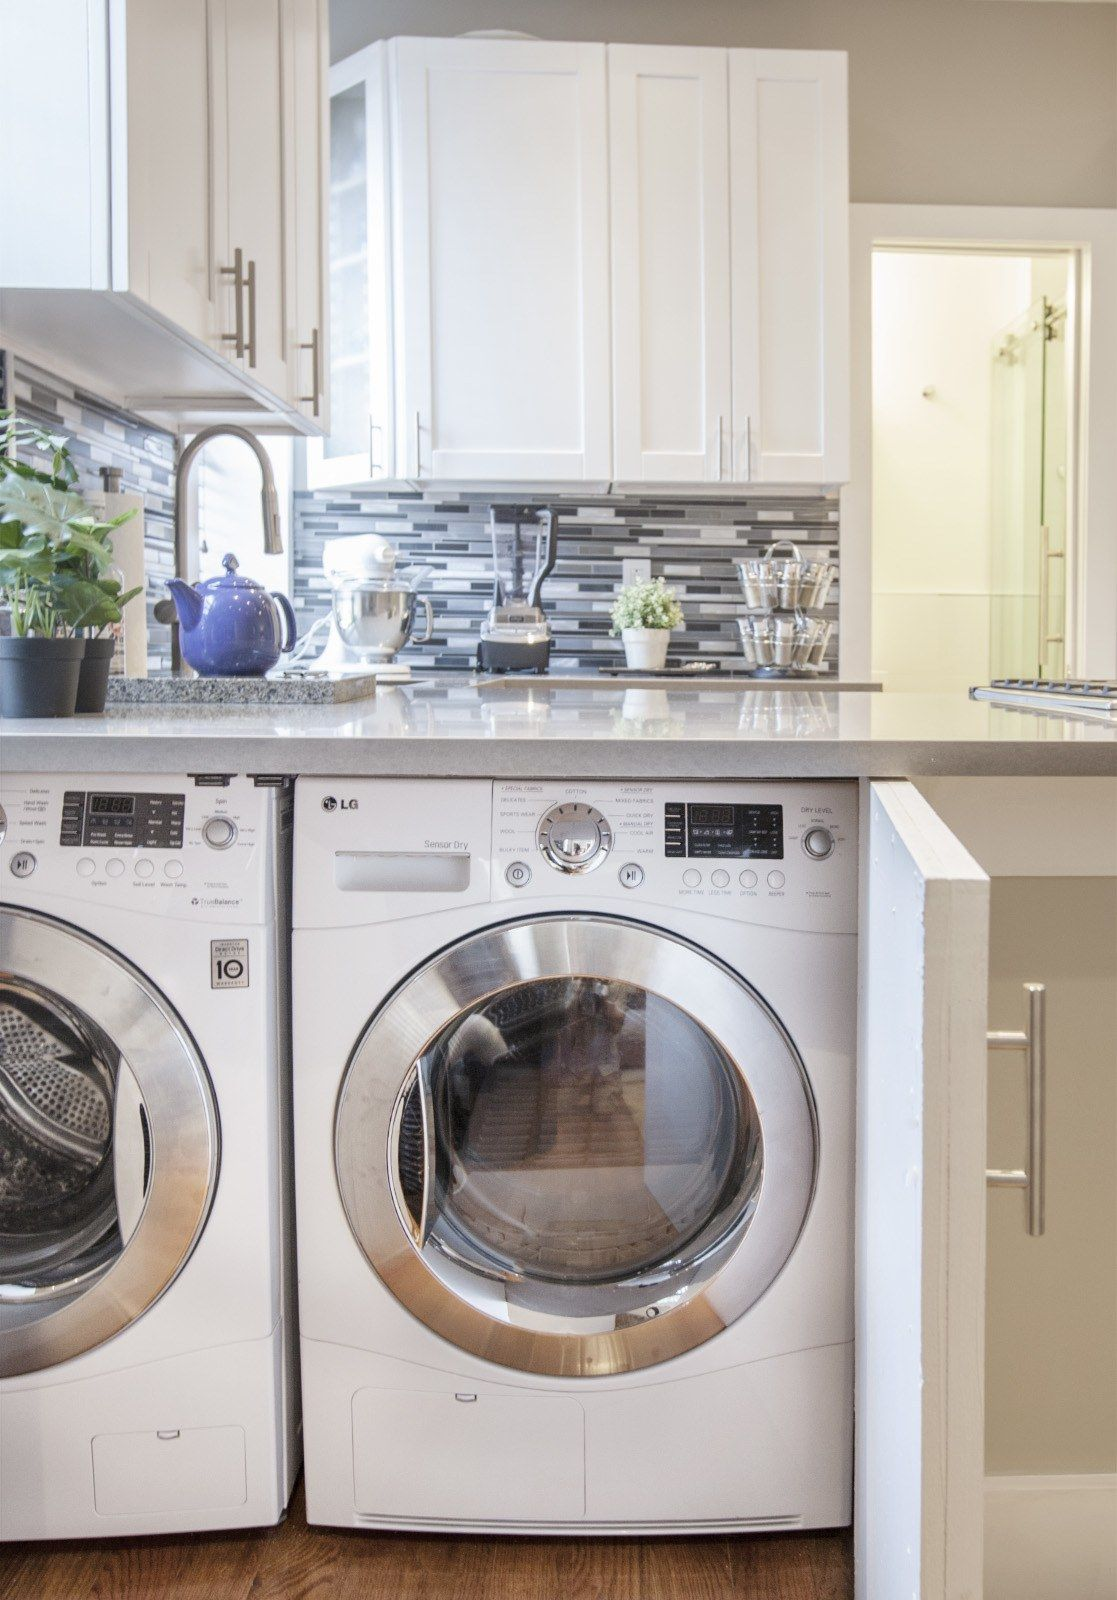 9 Small Laundry Room Ideas For The Tiniest Of Apartments Architectural Digest Small Laundry Rooms Small Laundry Room Laundry Room Storage